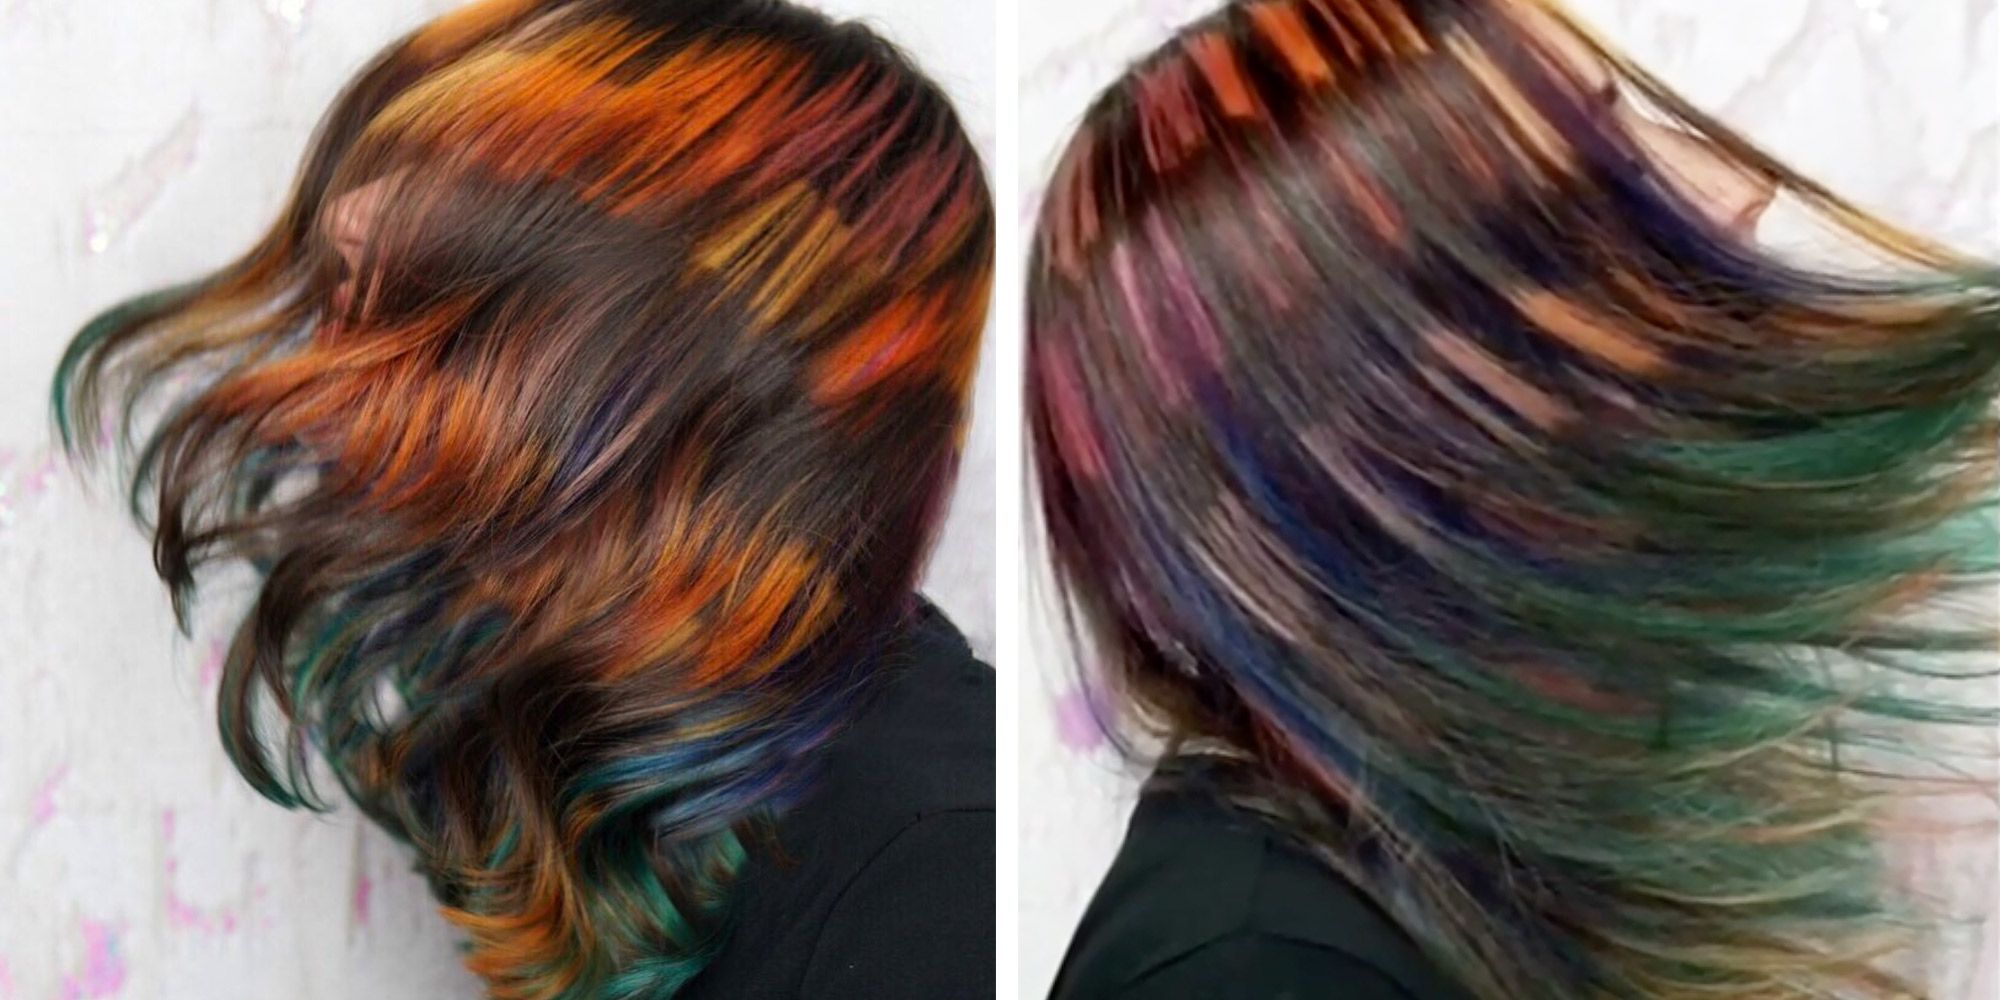 'Harry Potter' Gryffindor Hair Color Is a Real Thing - Trending Hair Color Ideas 2018